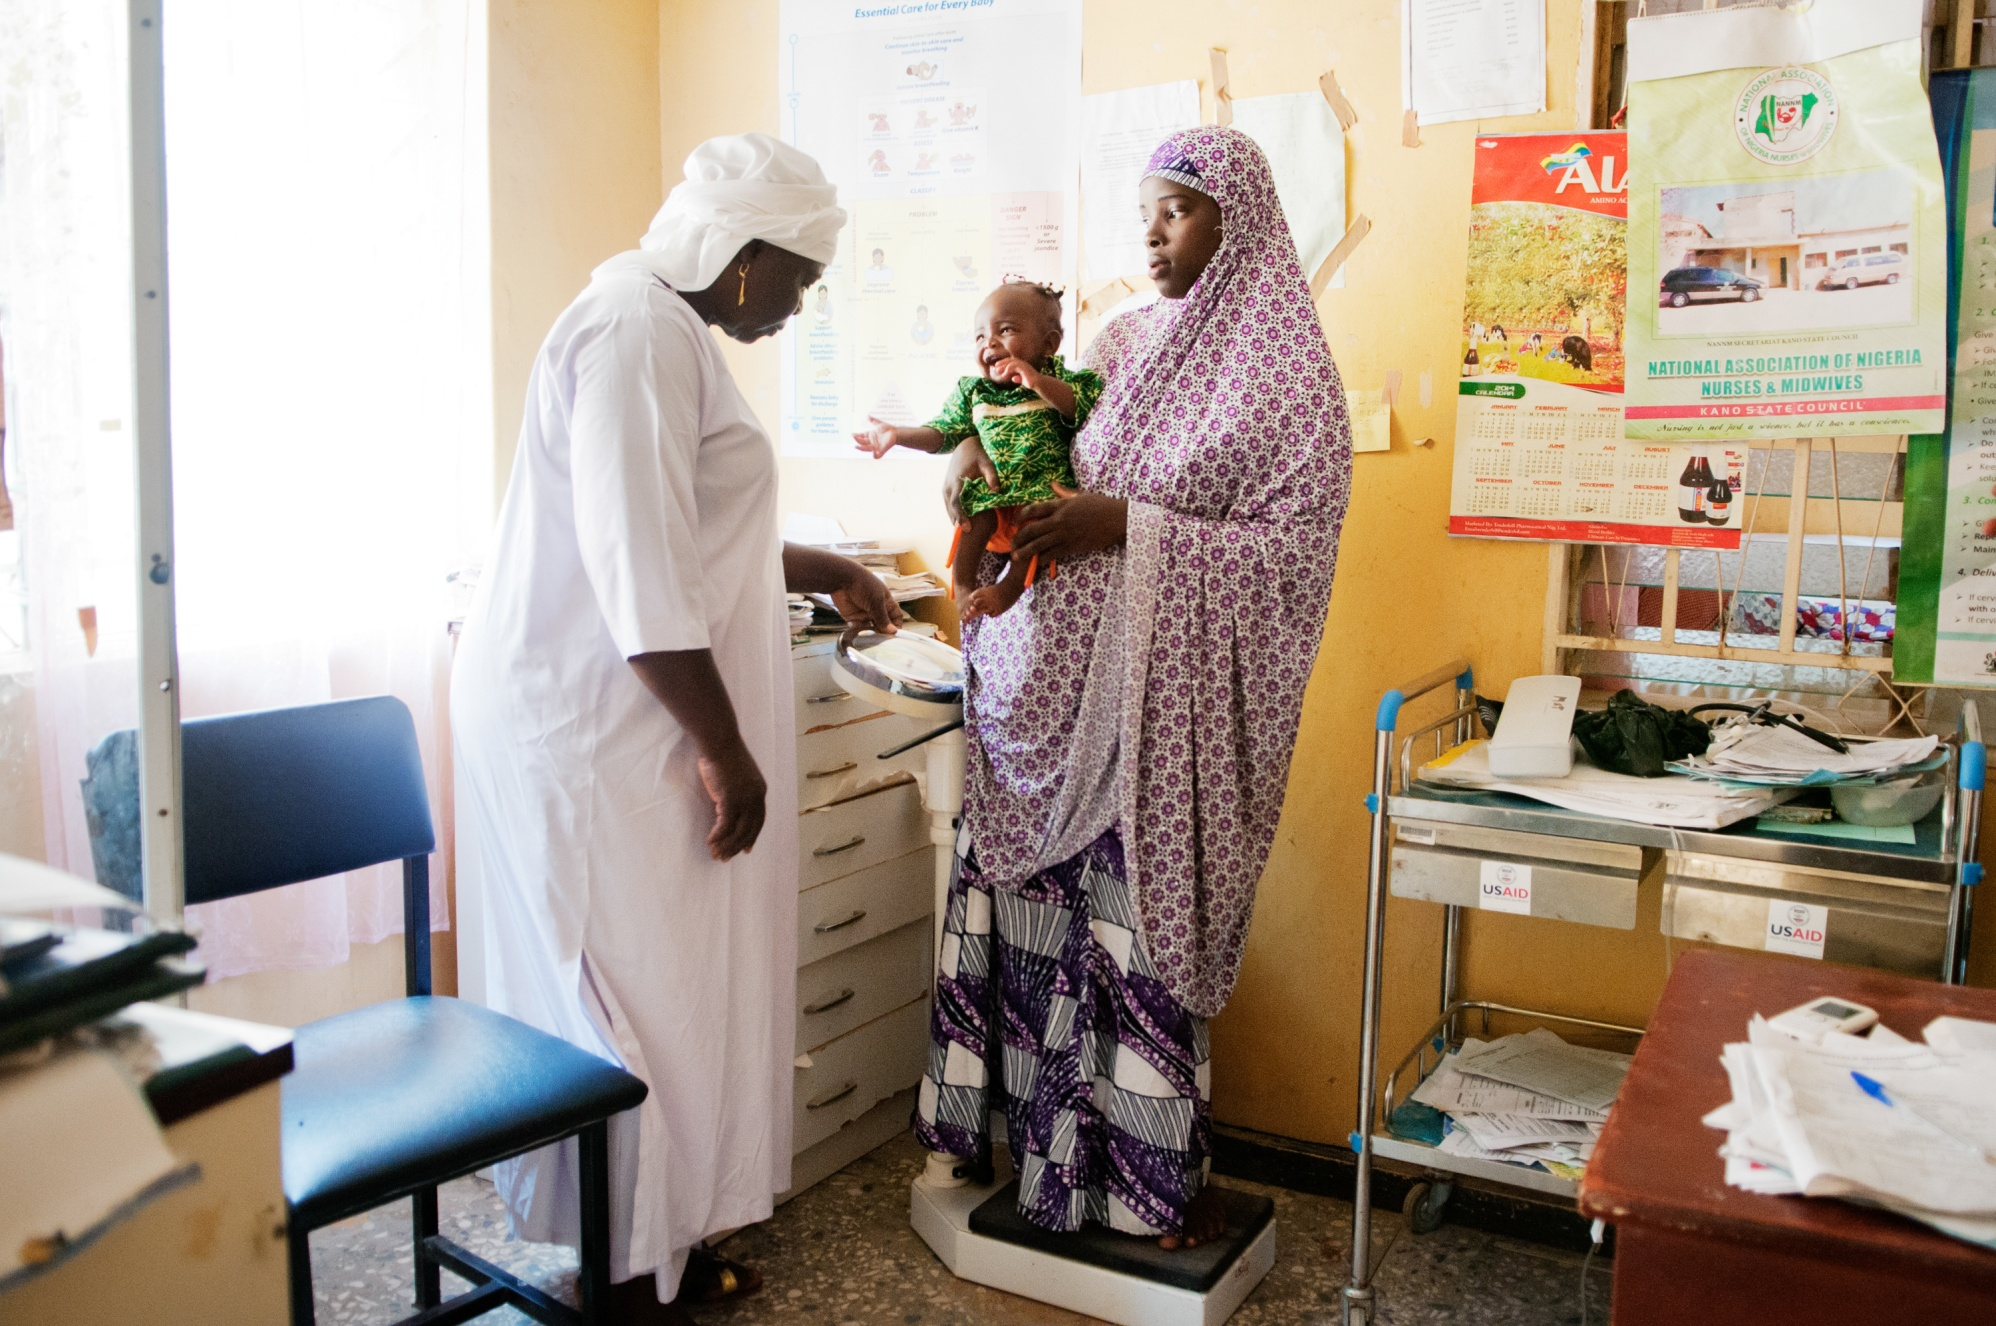 Midwife Tamar Okoh (left) weighs Azima Yahaya and her child Aisha at Sumaila General Hospital in Sumaila, Kano State, Nigeria. With no scale for toddlers at the hospital, she will have to calculate the difference between the weight of the mother and child. 4 September 2015. The Rotarian Action Group for Population and Development (RFPD) has supported work to advance maternal and child health in Nigeria for nearly 20 years.